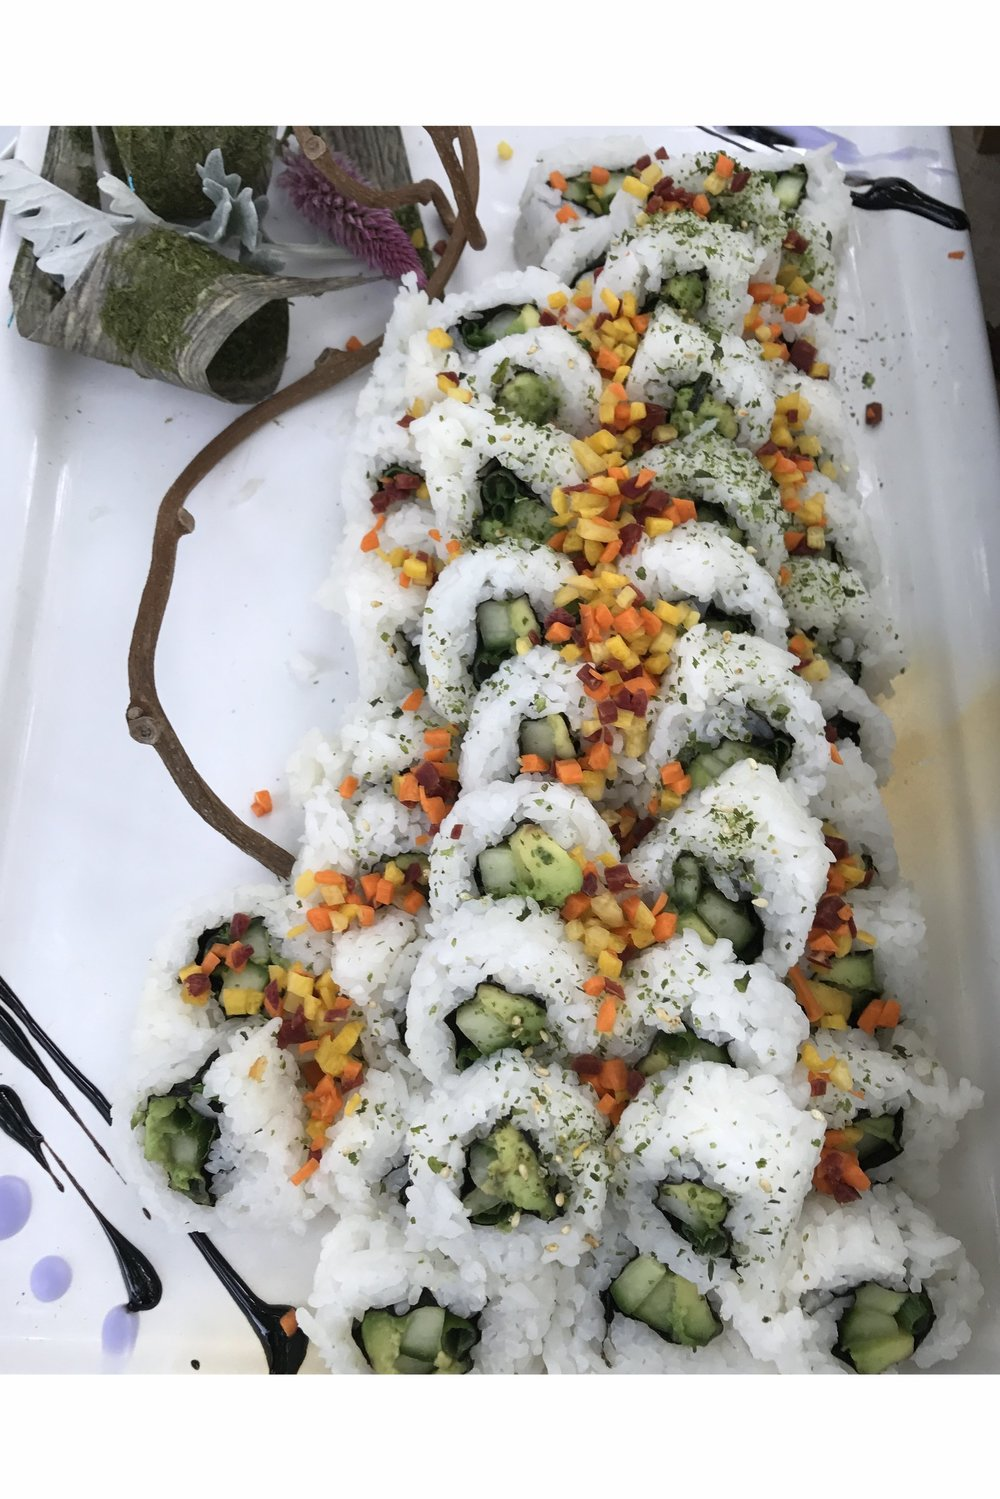 Cucumber and Avocado Roll